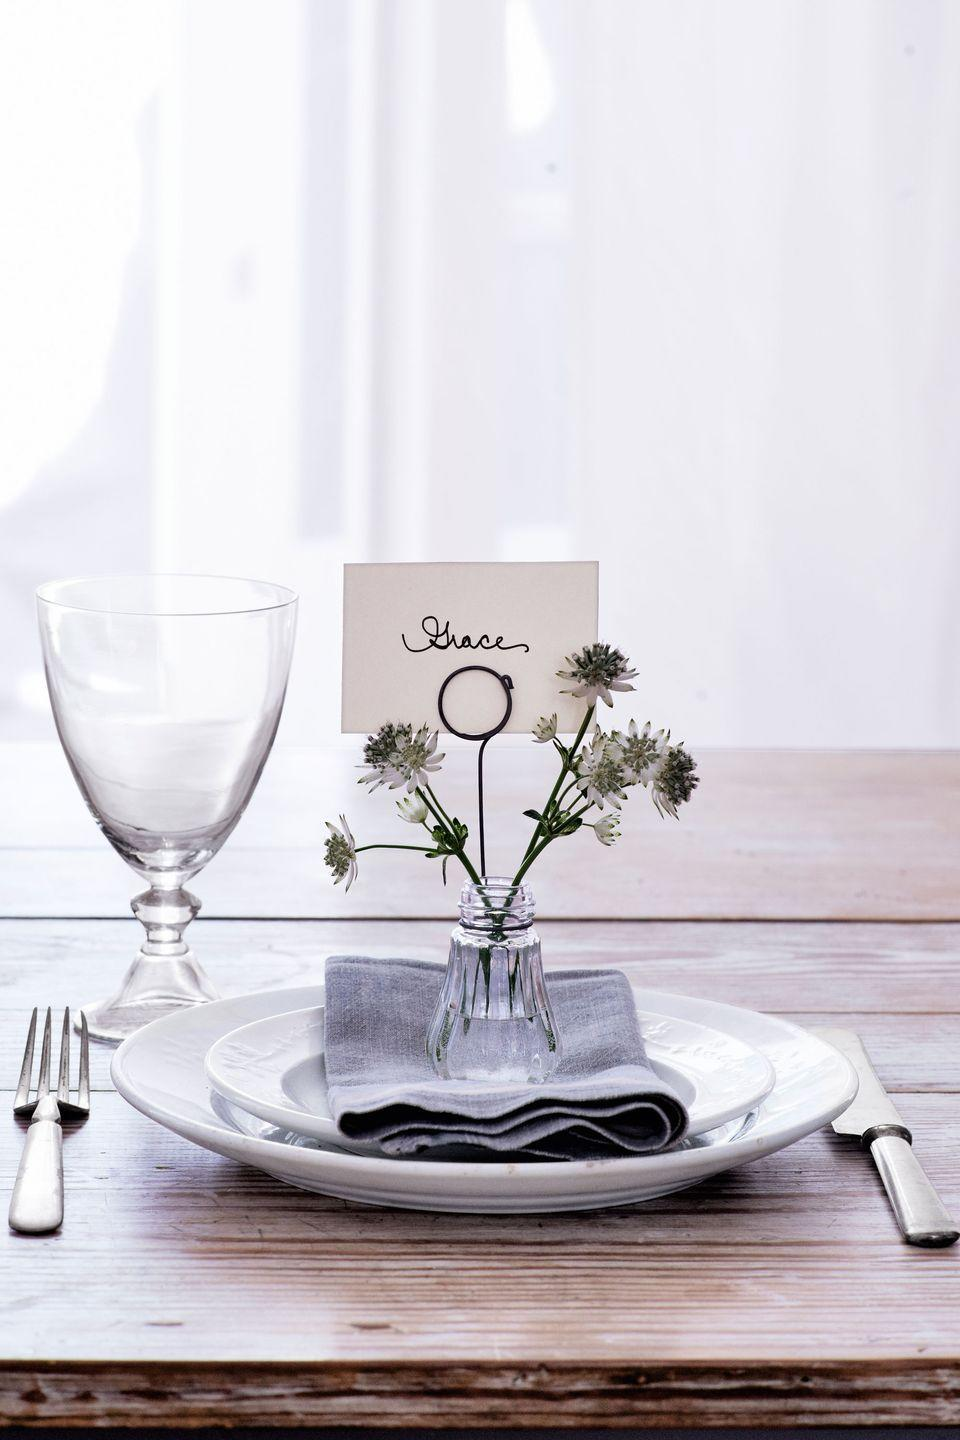 "<p>""Loop wire around a bottle to form a card holder, then pop in a mini-bouquet,"" says stylist <a href=""http://leanneford.com/"" rel=""nofollow noopener"" target=""_blank"" data-ylk=""slk:Leanne Ford"" class=""link rapid-noclick-resp"">Leanne Ford</a>.</p><p><a class=""link rapid-noclick-resp"" href=""https://www.amazon.com/Bottles-Camping-Project-Jewelry-Stranded/dp/B010RGS6DE/?tag=syn-yahoo-20&ascsubtag=%5Bartid%7C10050.g.1538%5Bsrc%7Cyahoo-us"" rel=""nofollow noopener"" target=""_blank"" data-ylk=""slk:SHOP GLASS BOTTLES"">SHOP GLASS BOTTLES</a></p>"